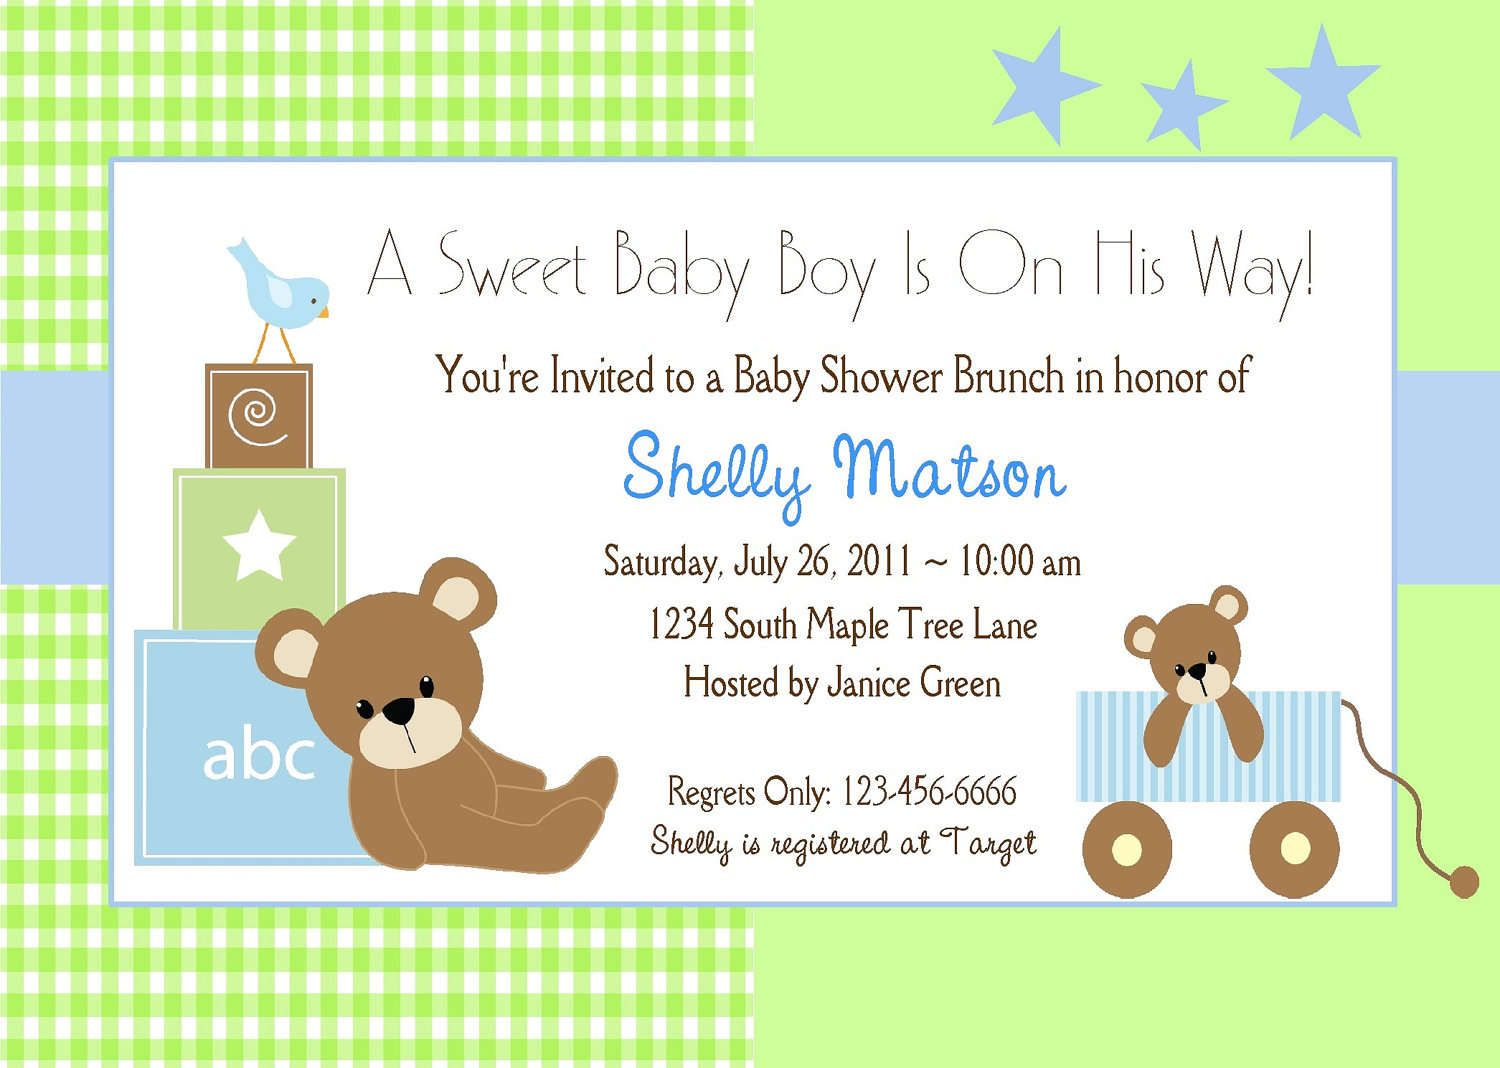 Baby Shower Invitations Free Templates Online Pleasing Download Now Free Template It's A Baby Boy Shower Invitations  Baby .